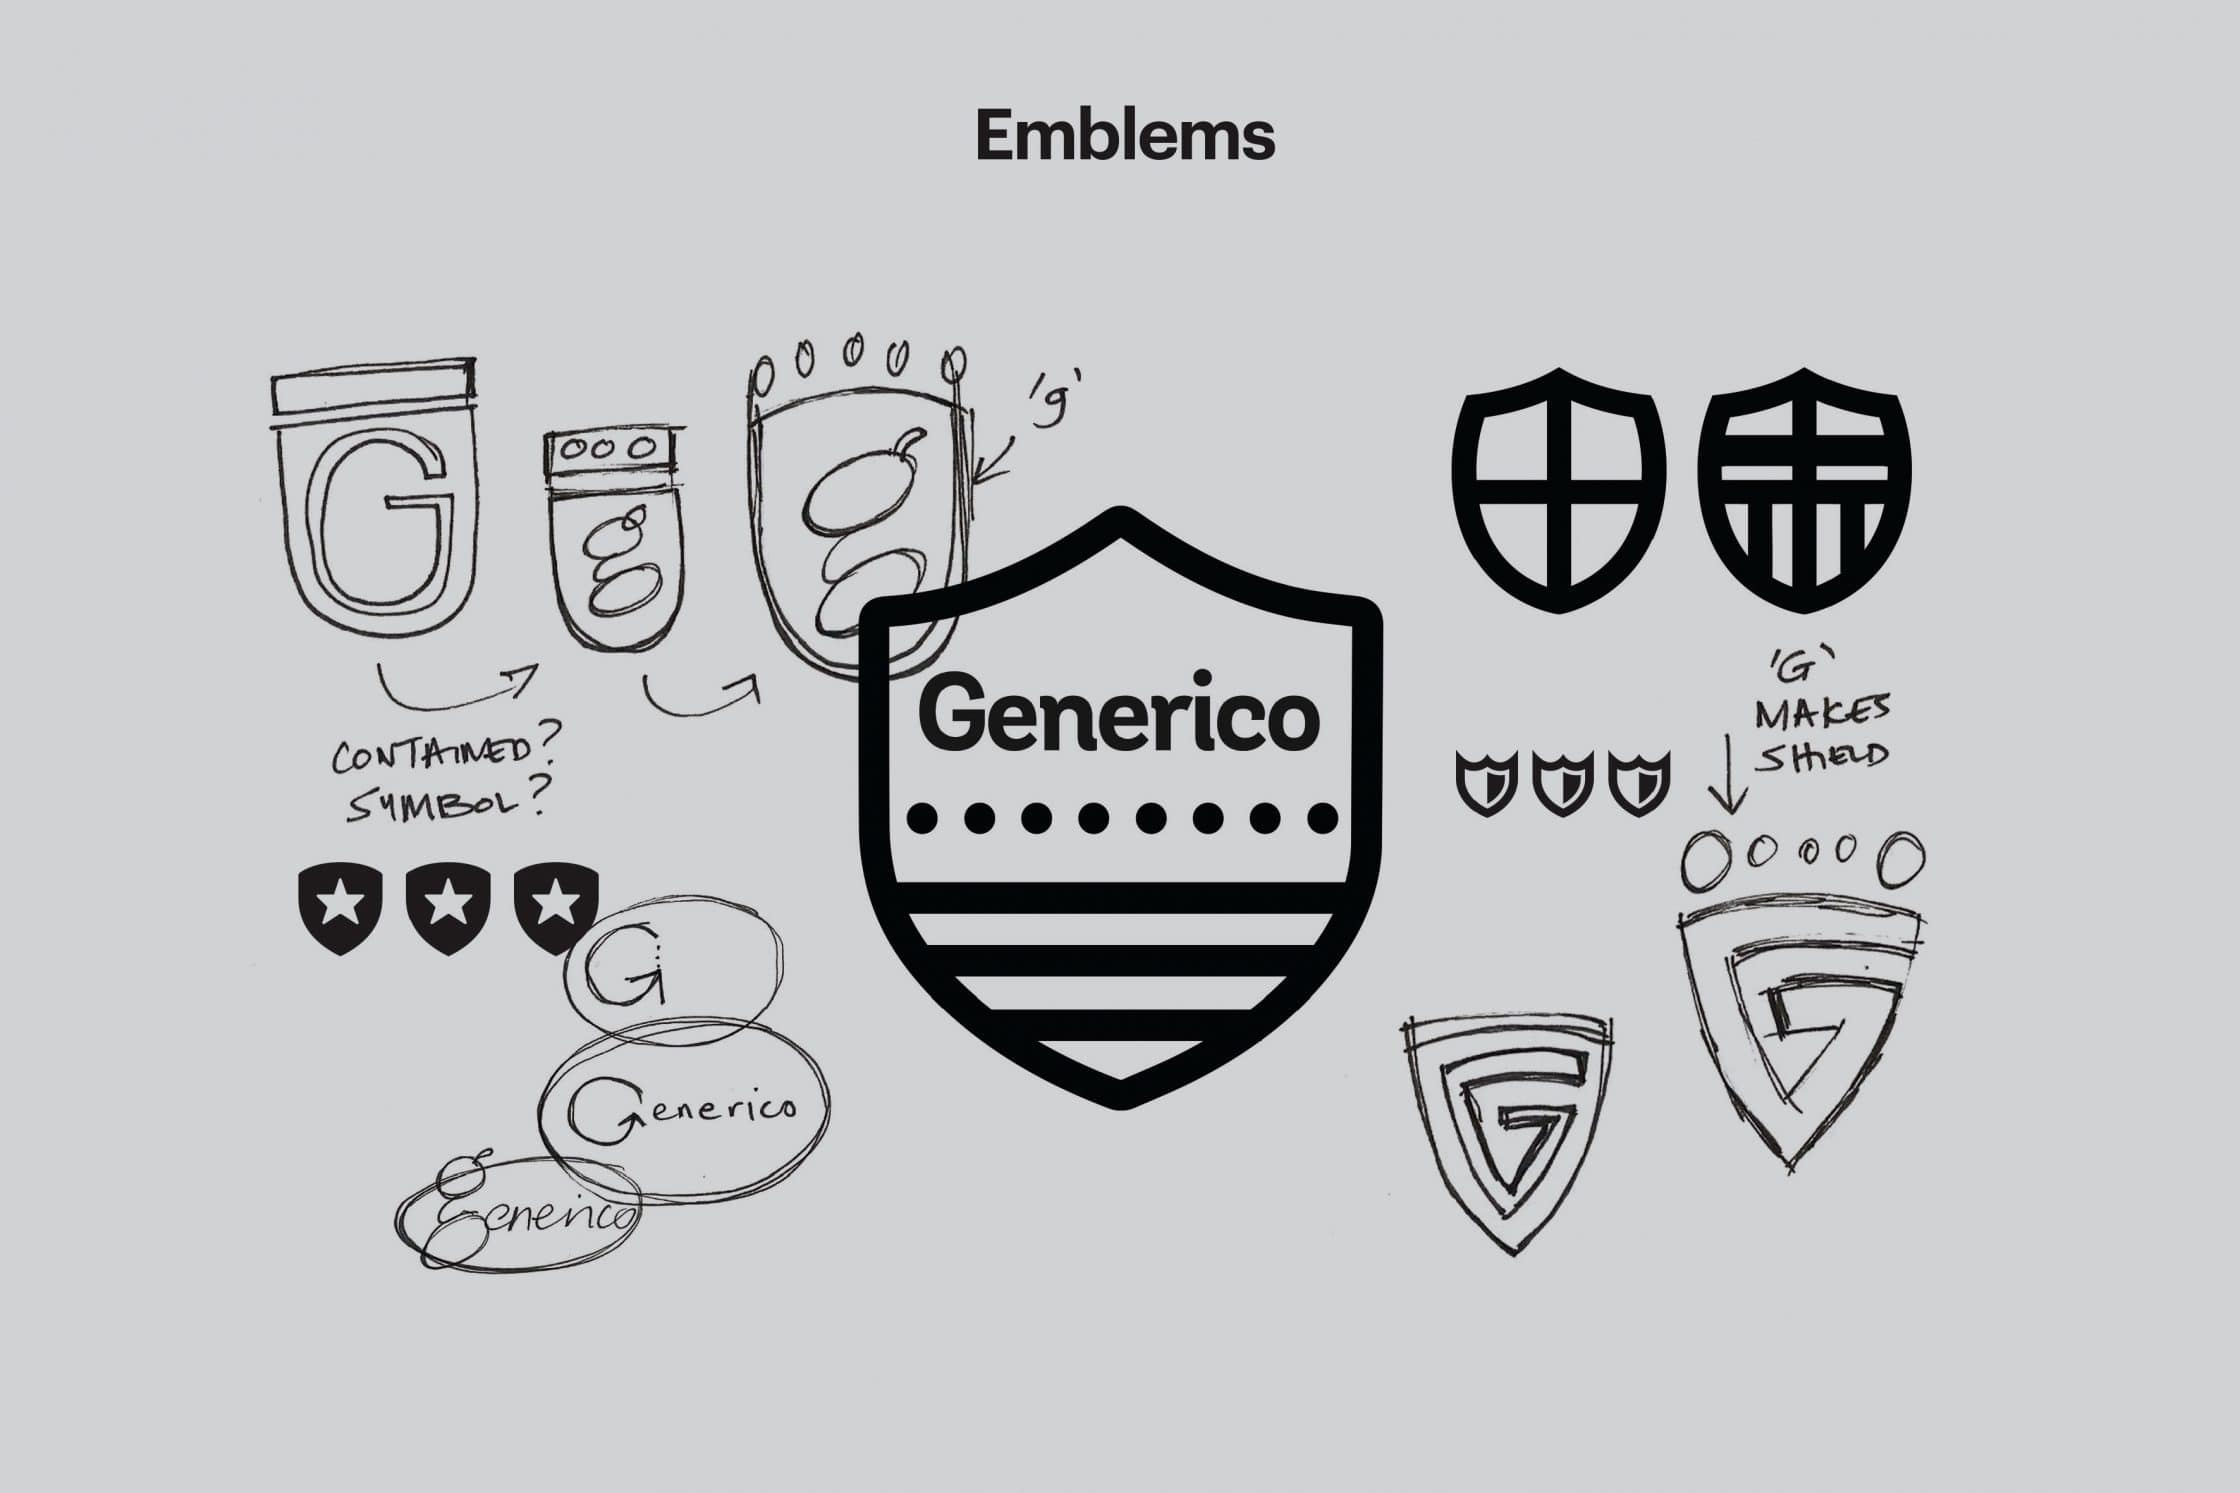 Try out different emblems to find the preferred ones.